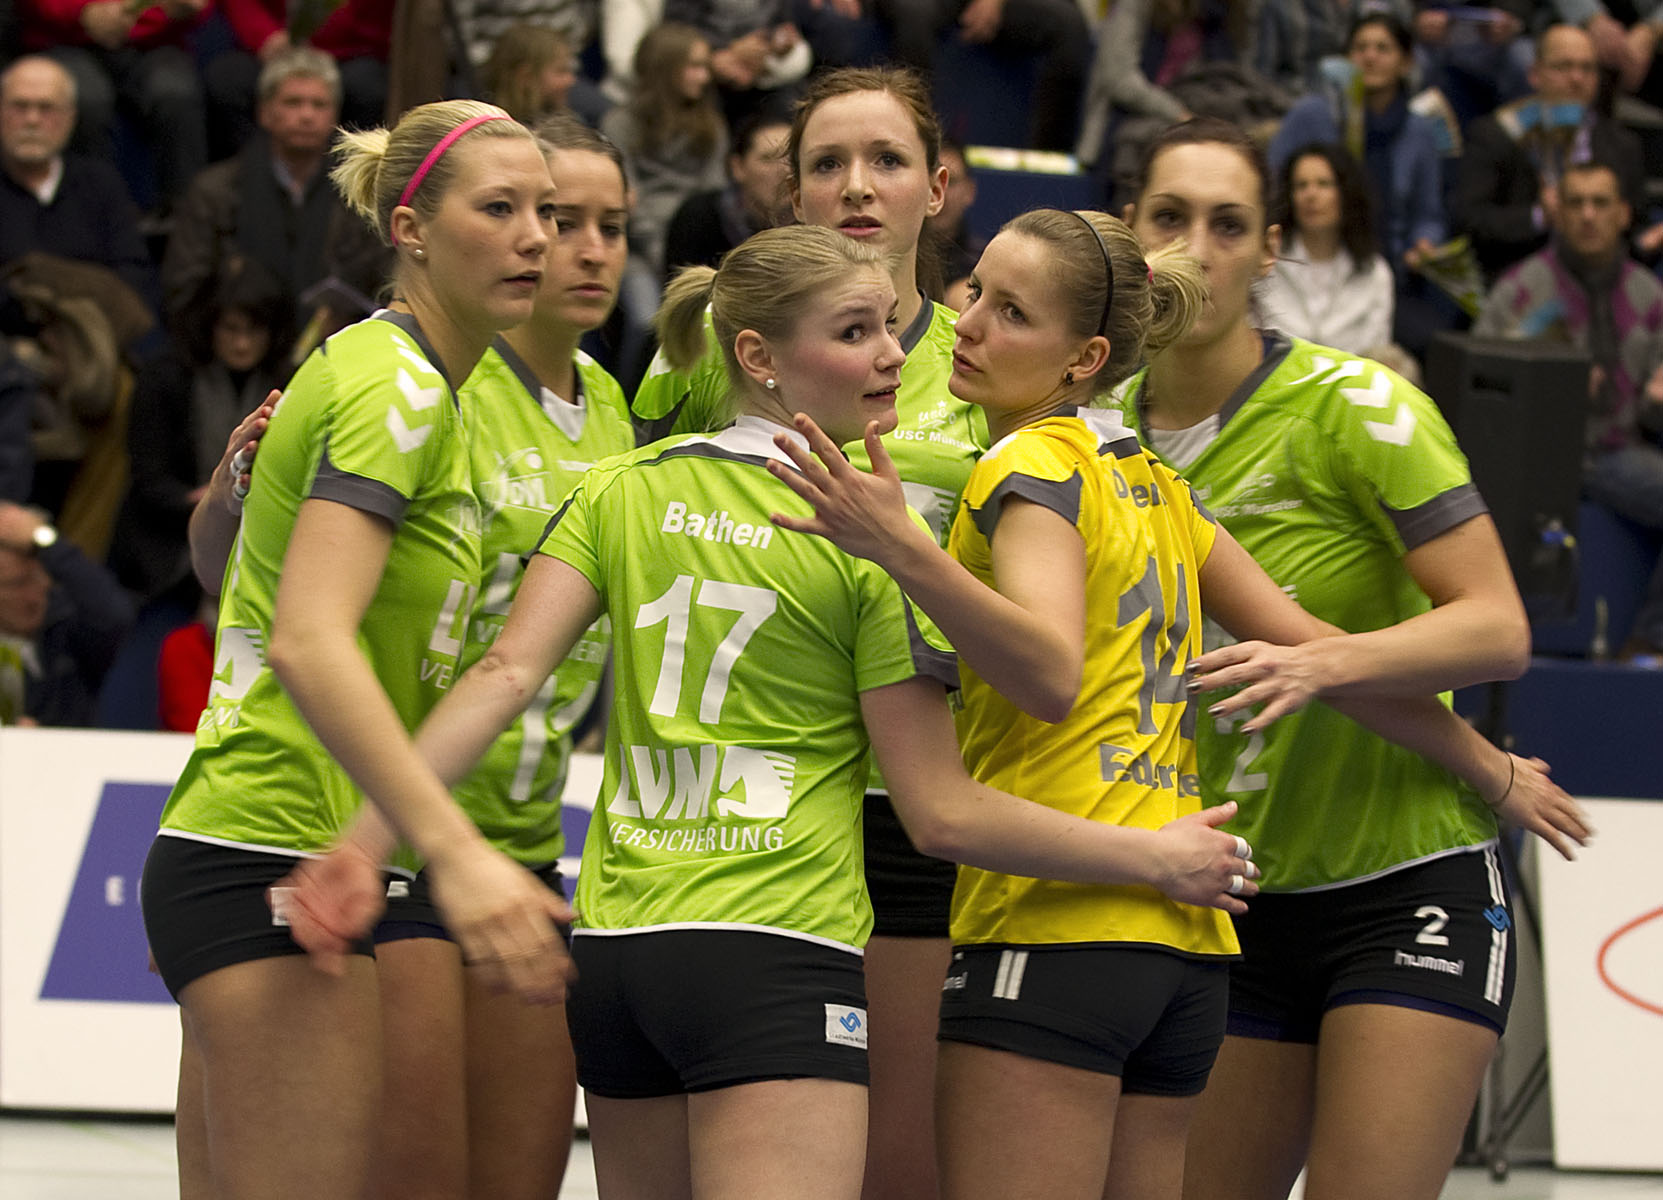 volleyball damen 1 bundesliga